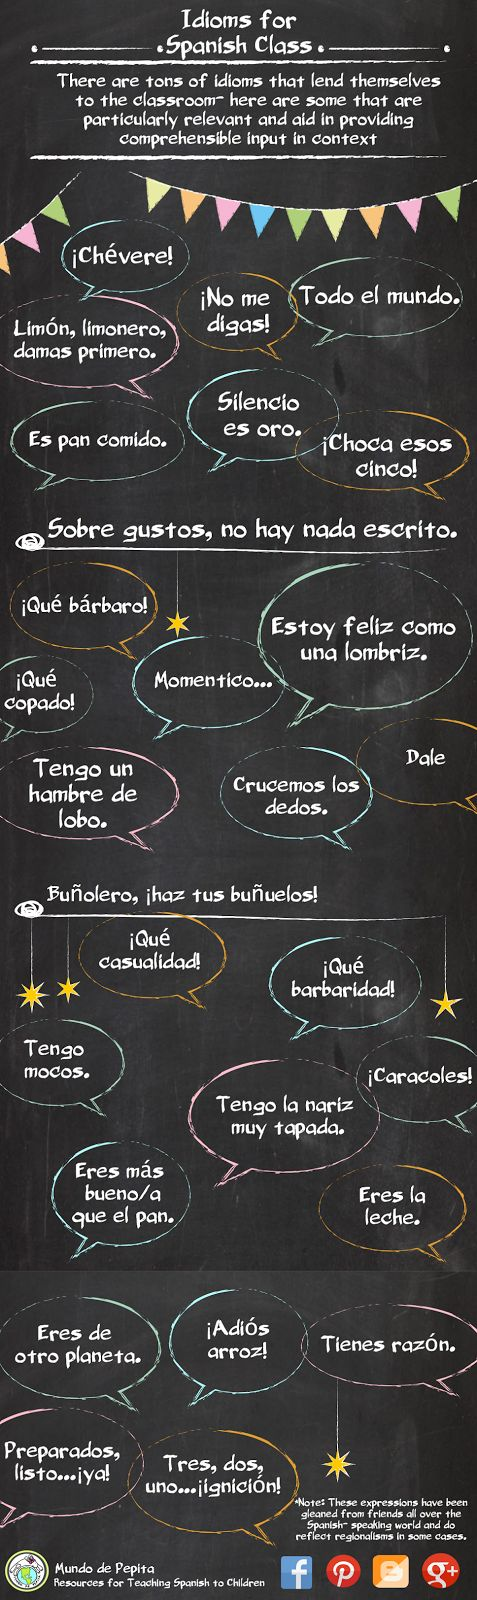 "Good idea for a ""Frase de la semana"" board."